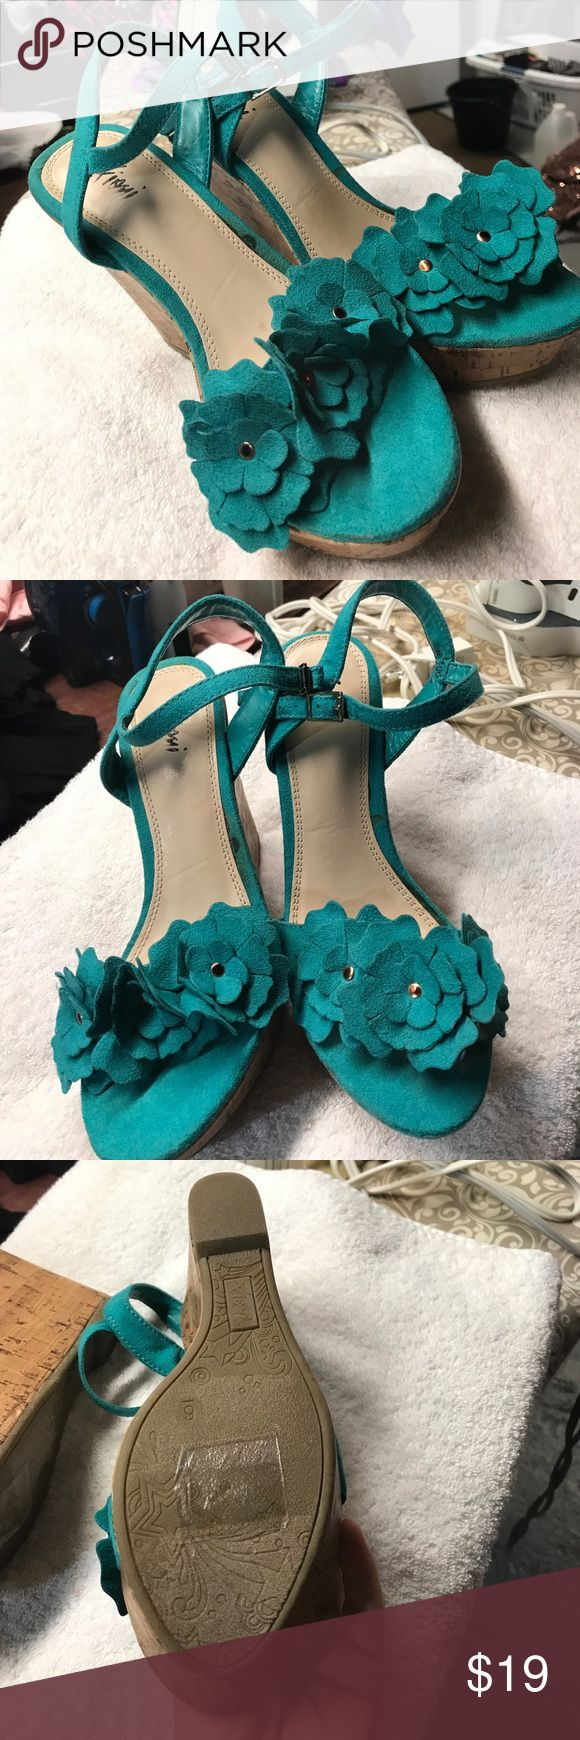 Never worn teal wedges Wedges never worn size 6 Shoes Wedges